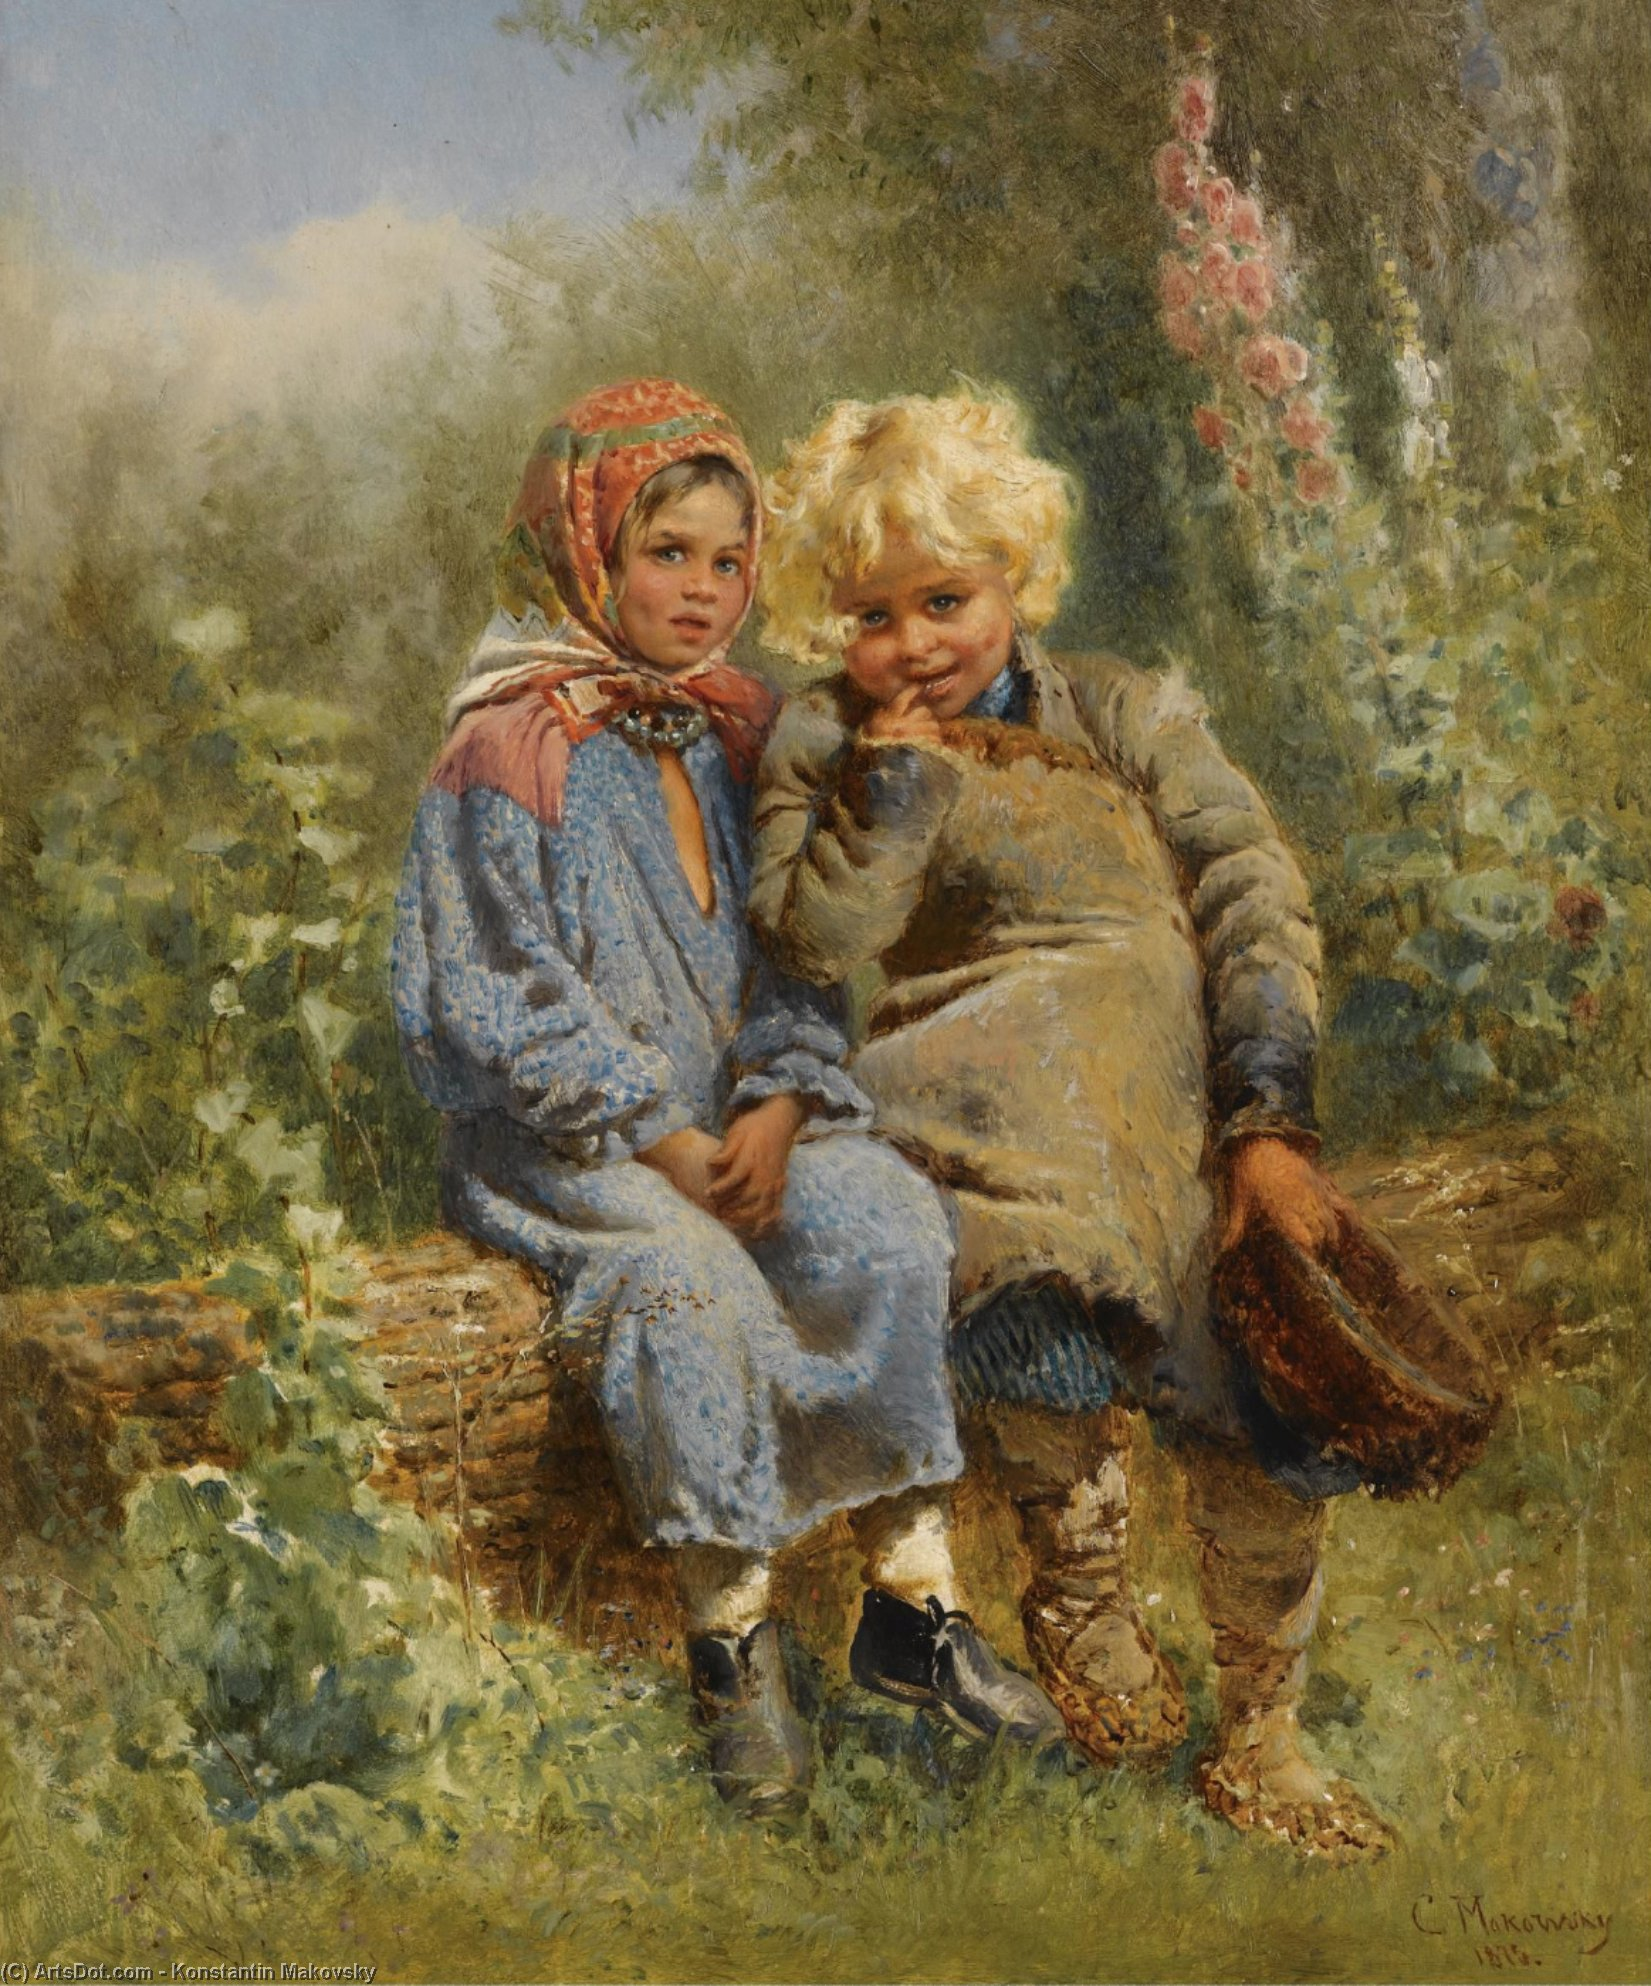 Peasant Children at rest, Oil On Panel by Konstantin Yegorovich Makovsky (1839-1915, Russia)